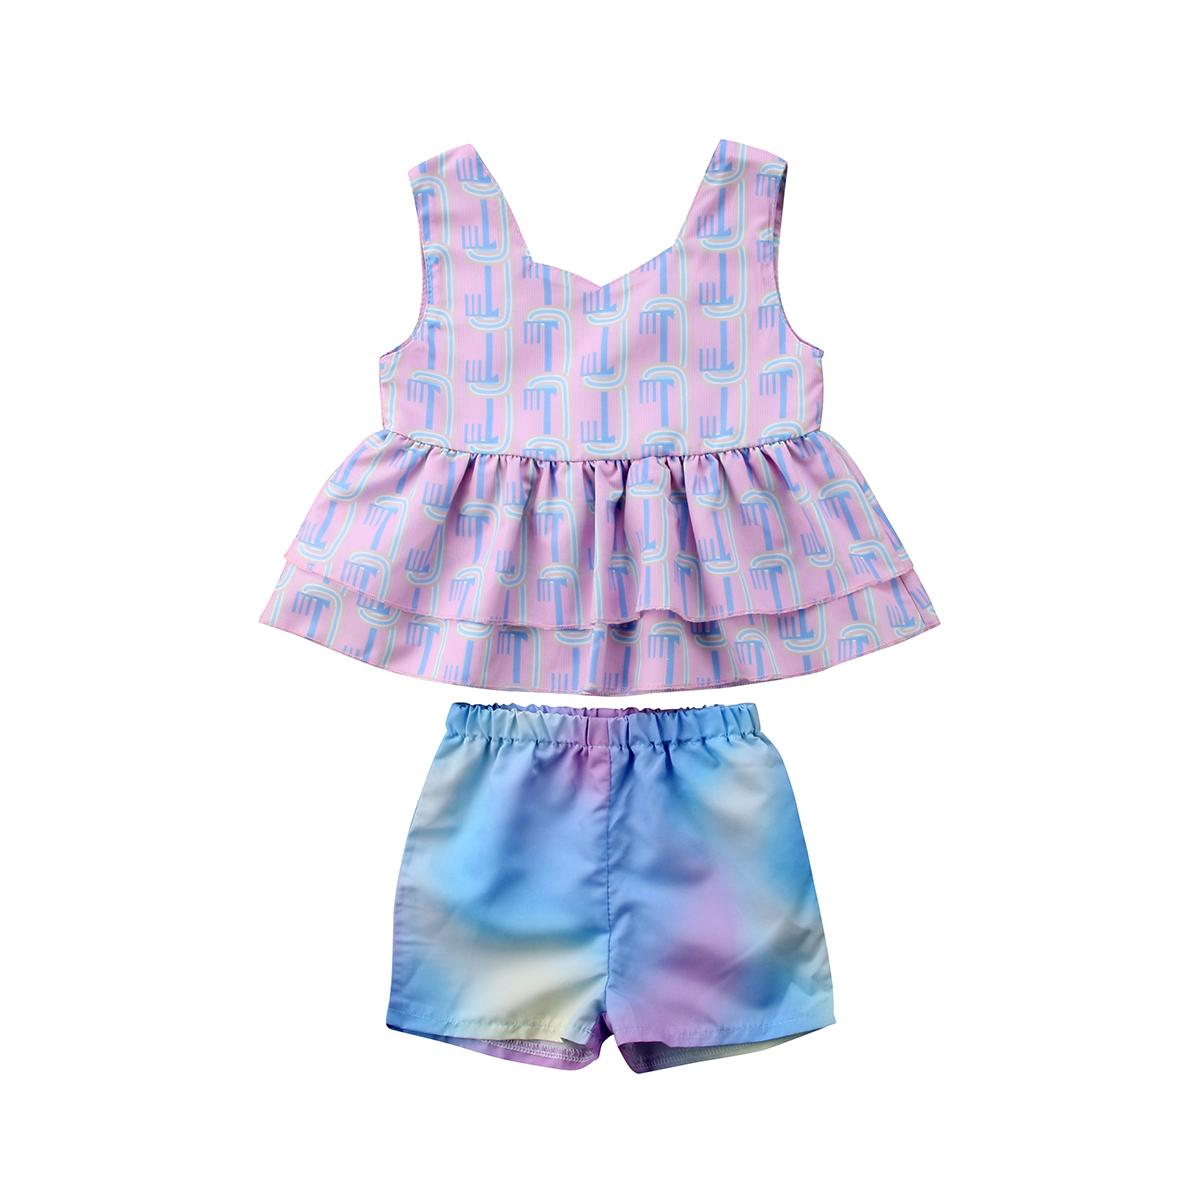 eef789c383dc8 Cute Toddler Baby Kids Girls Rainbow Ruffles Tops Dress + Shorts 2Pcs  Outfits Set Clothes